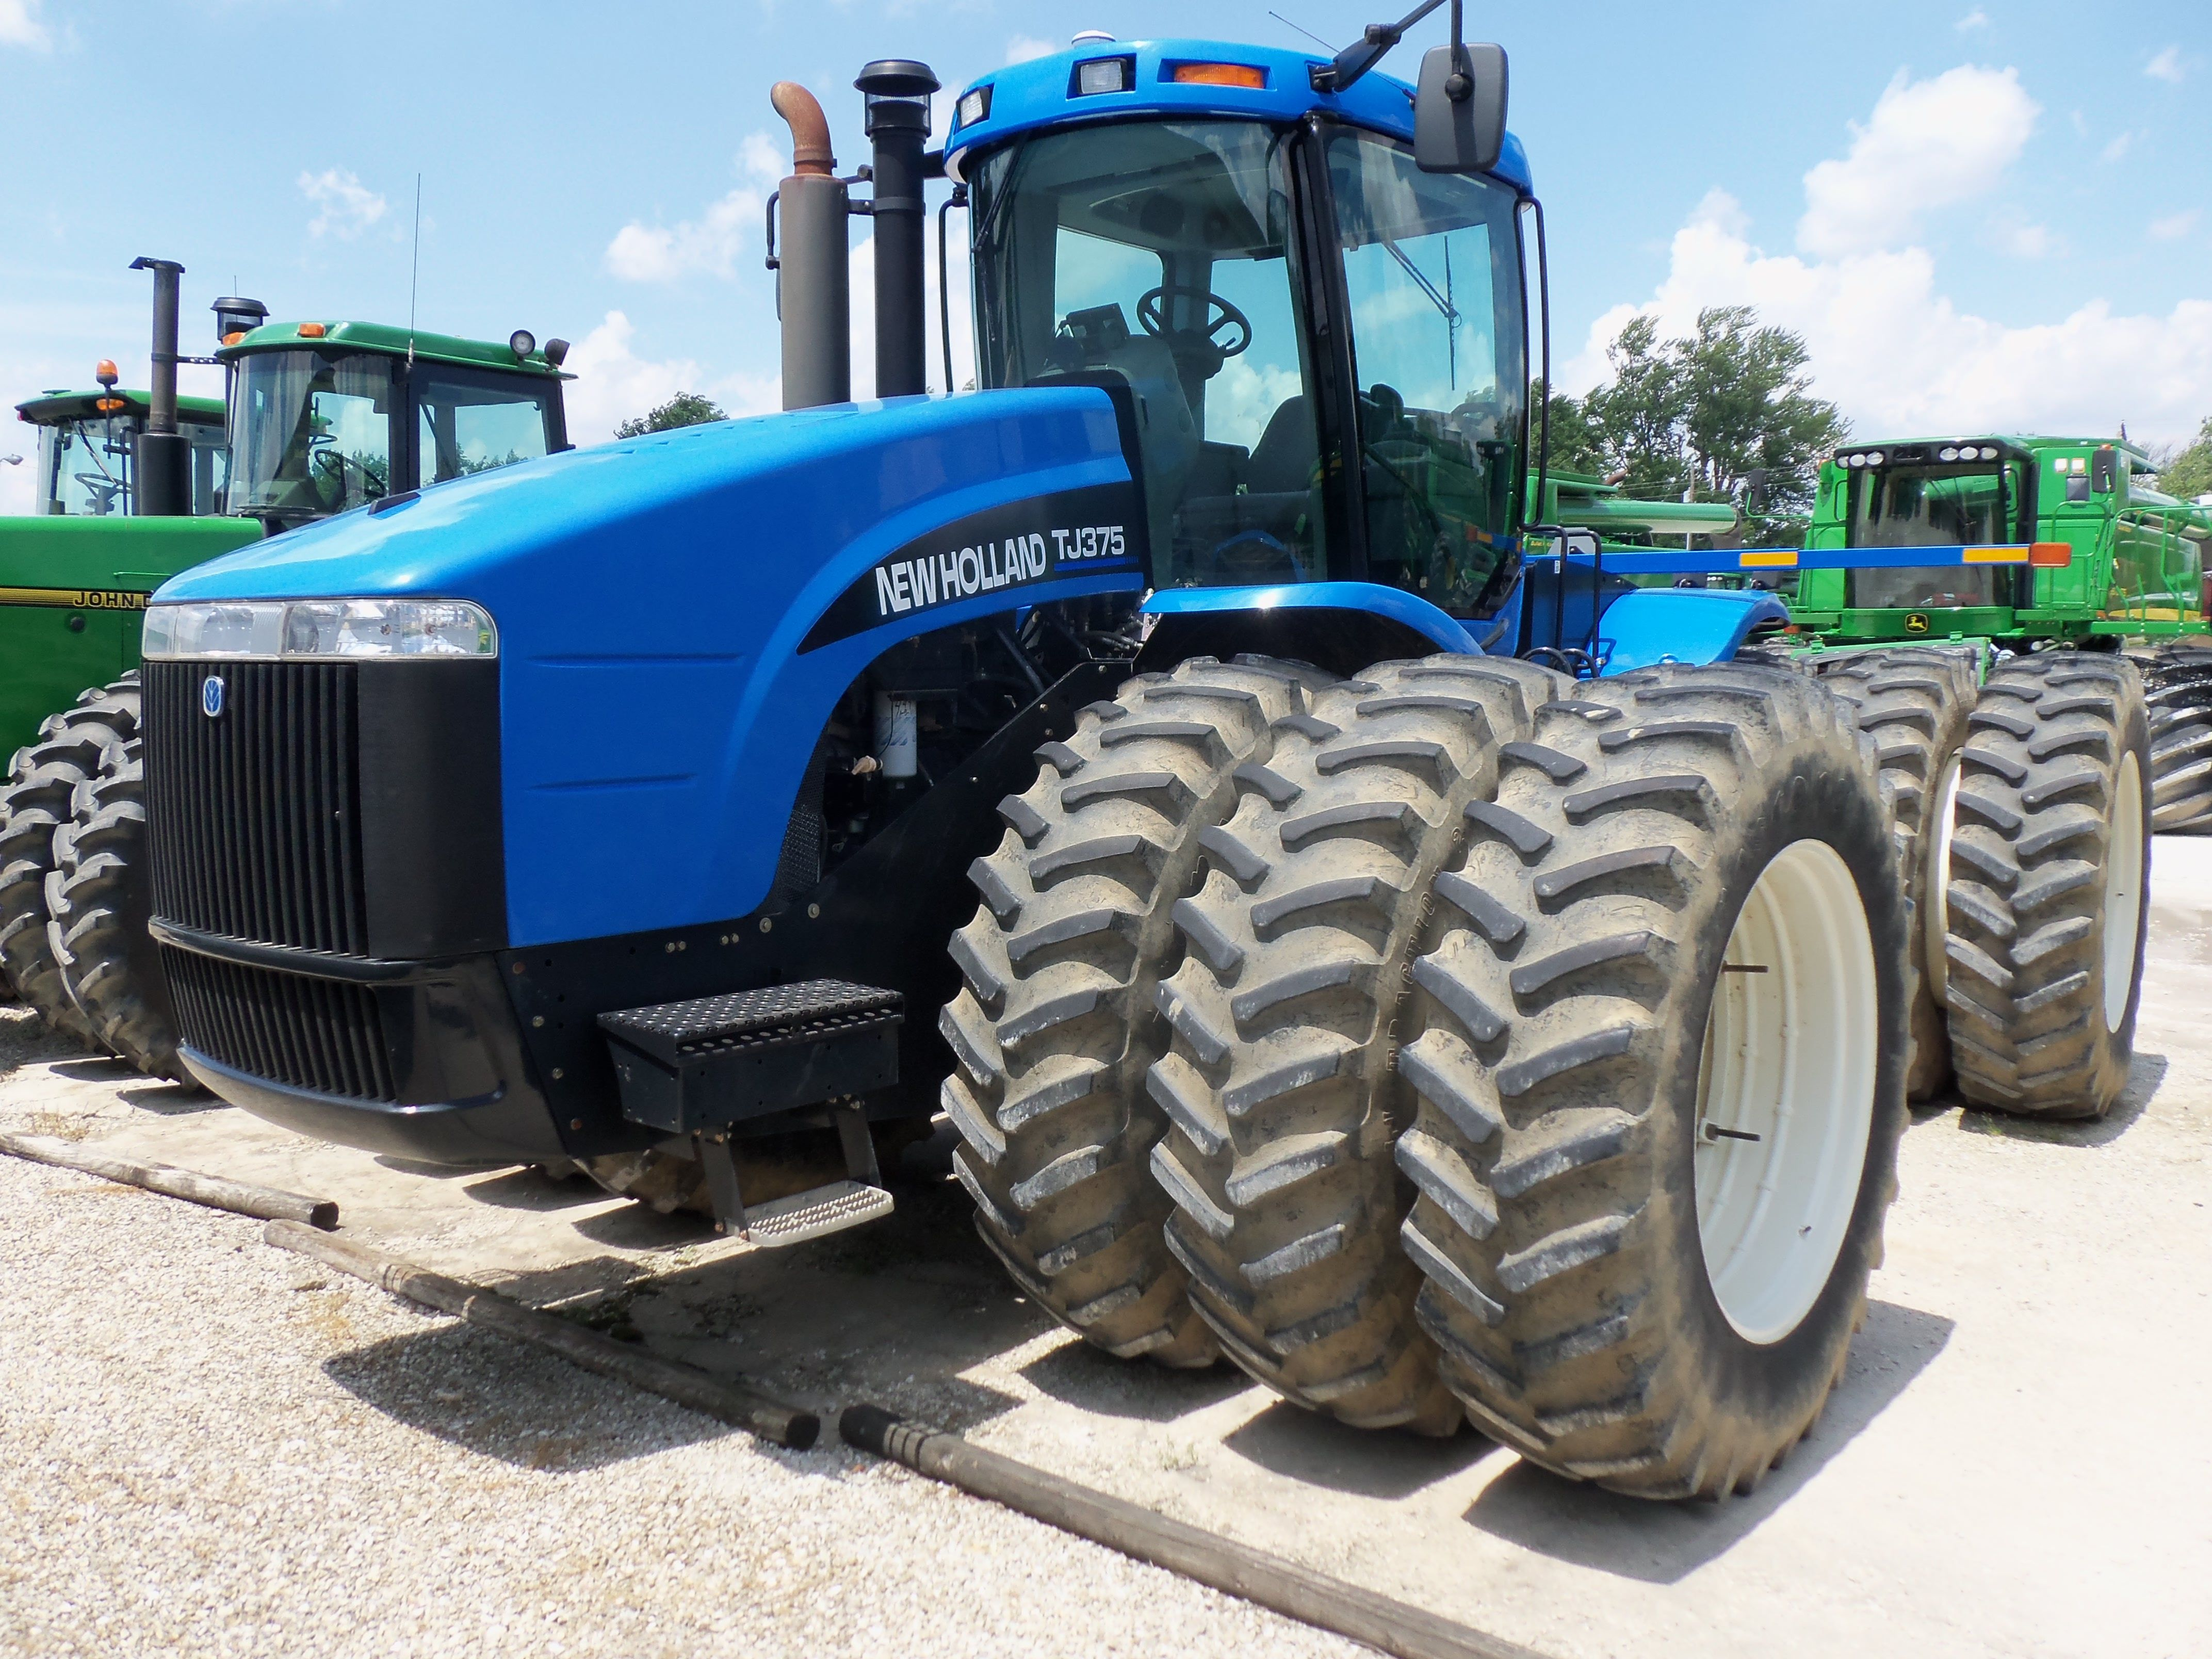 375 Hp New Holland Tj375 With Triples New Holland Tractor Ford